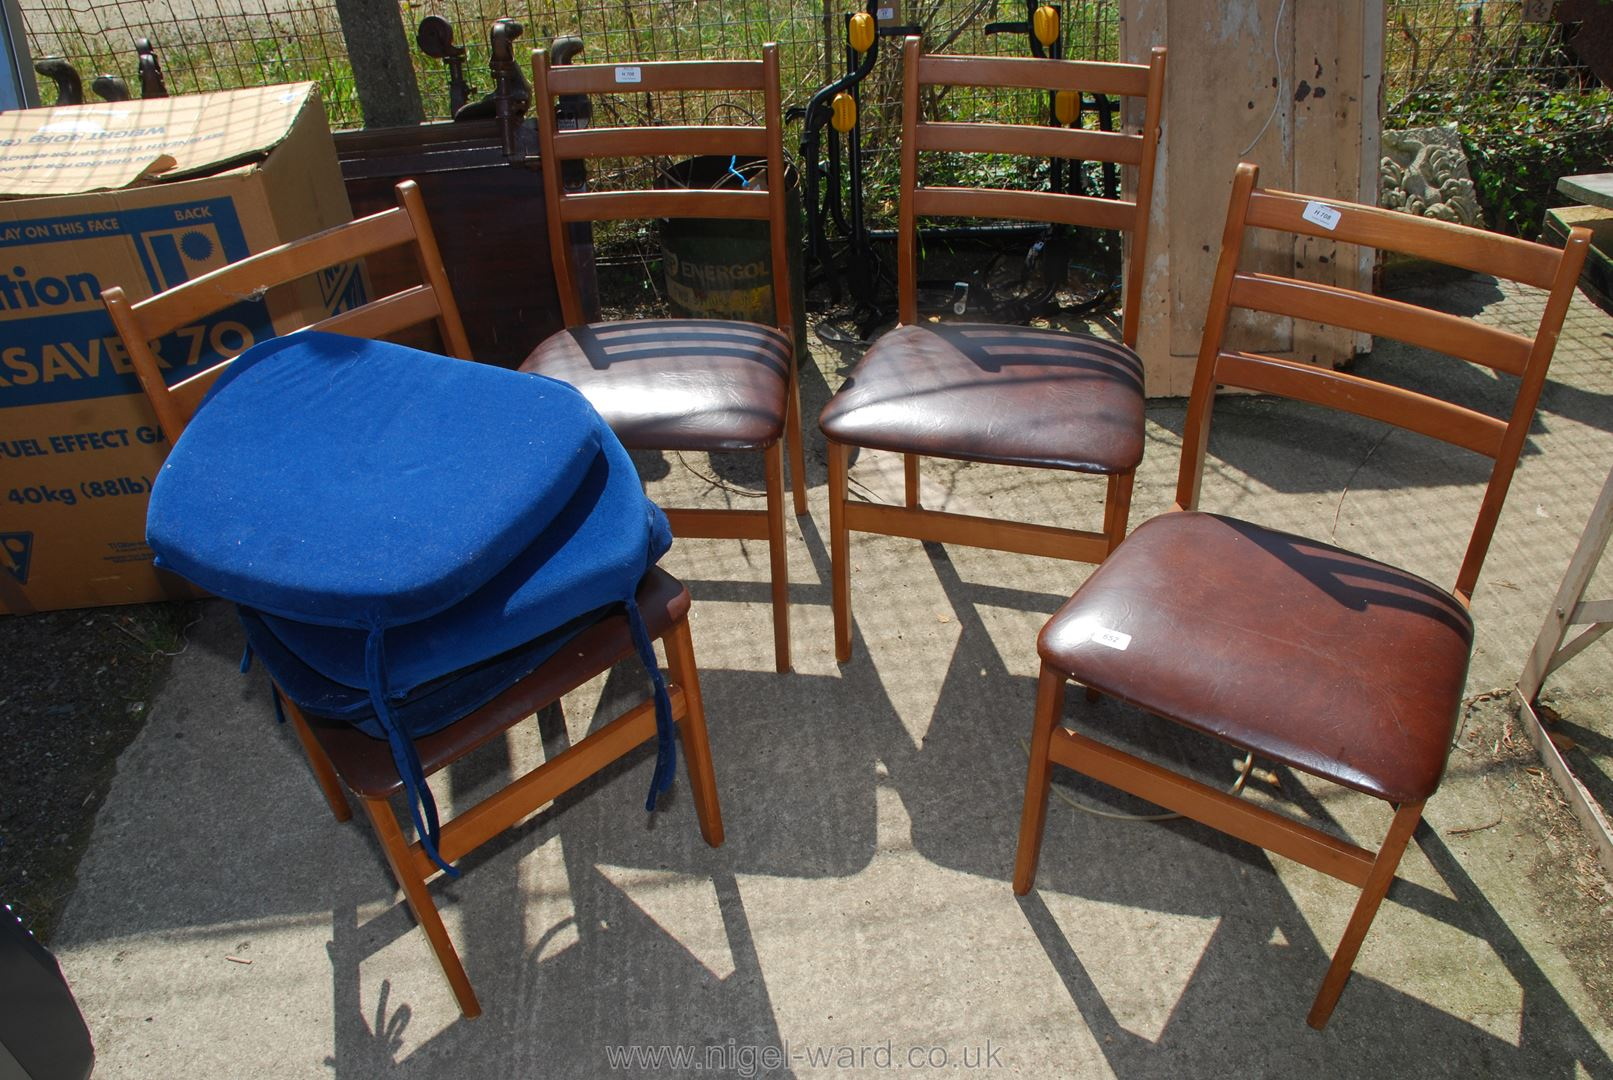 Four ladderback kitchen chairs with additional cushions for reupholstery